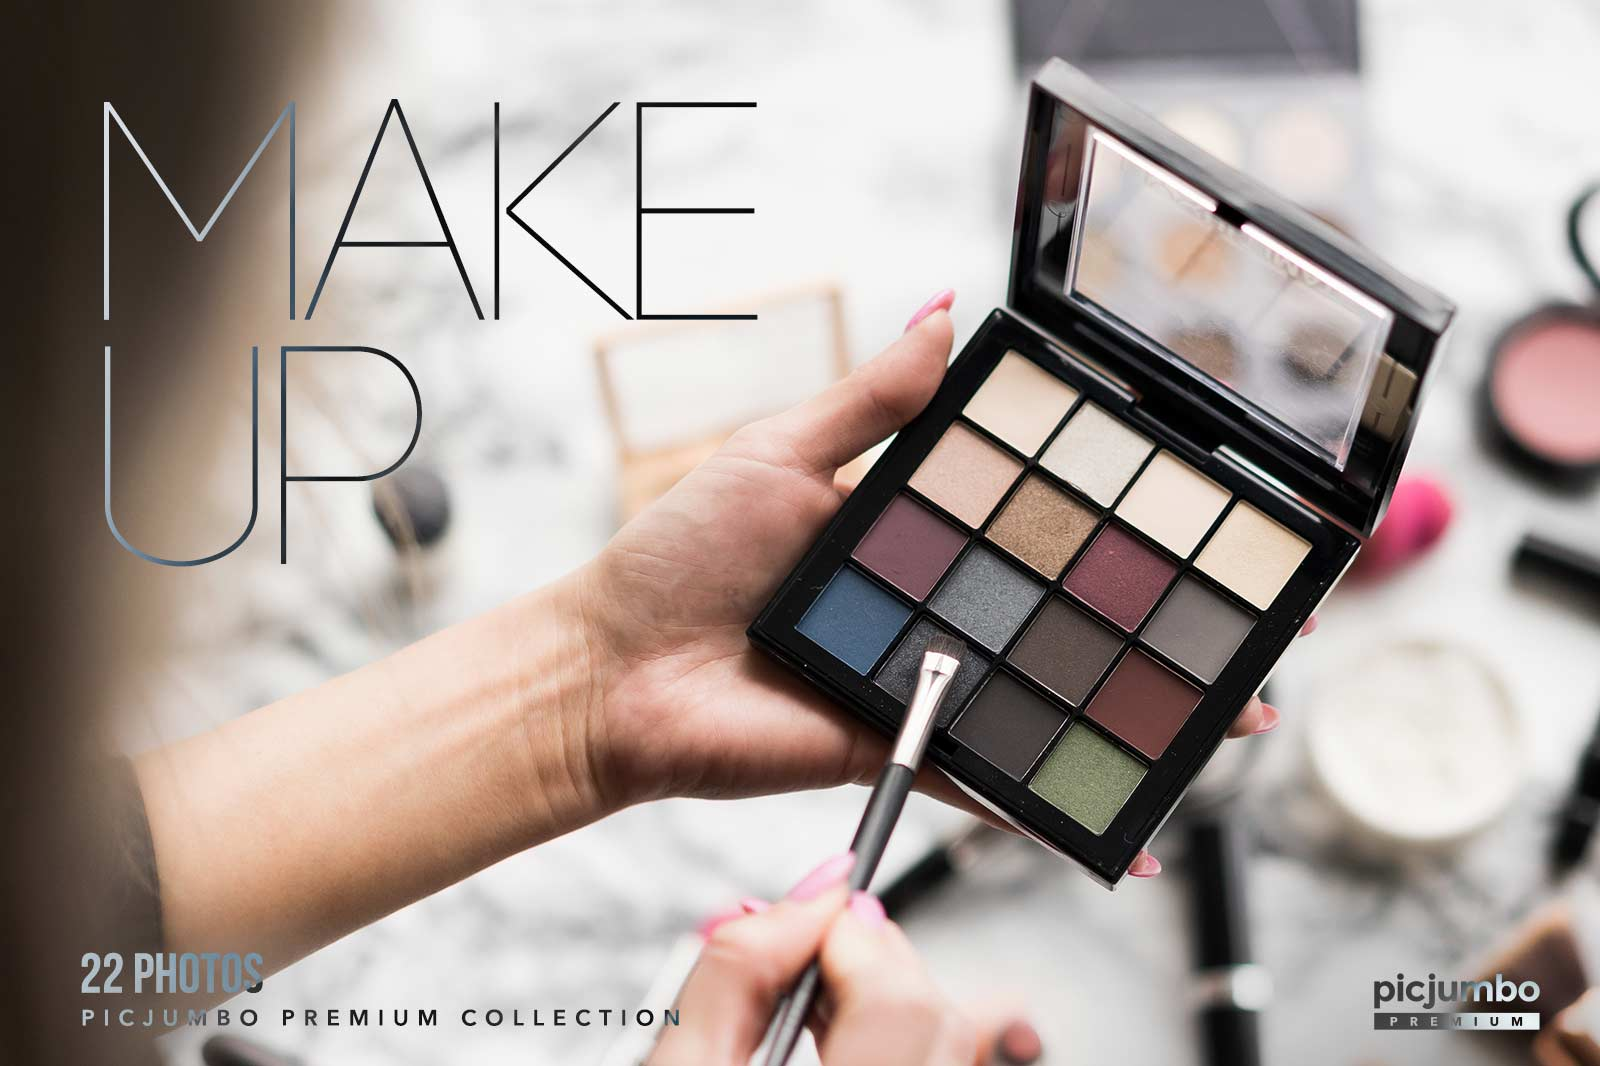 Join PREMIUM and get full collection now: Makeup